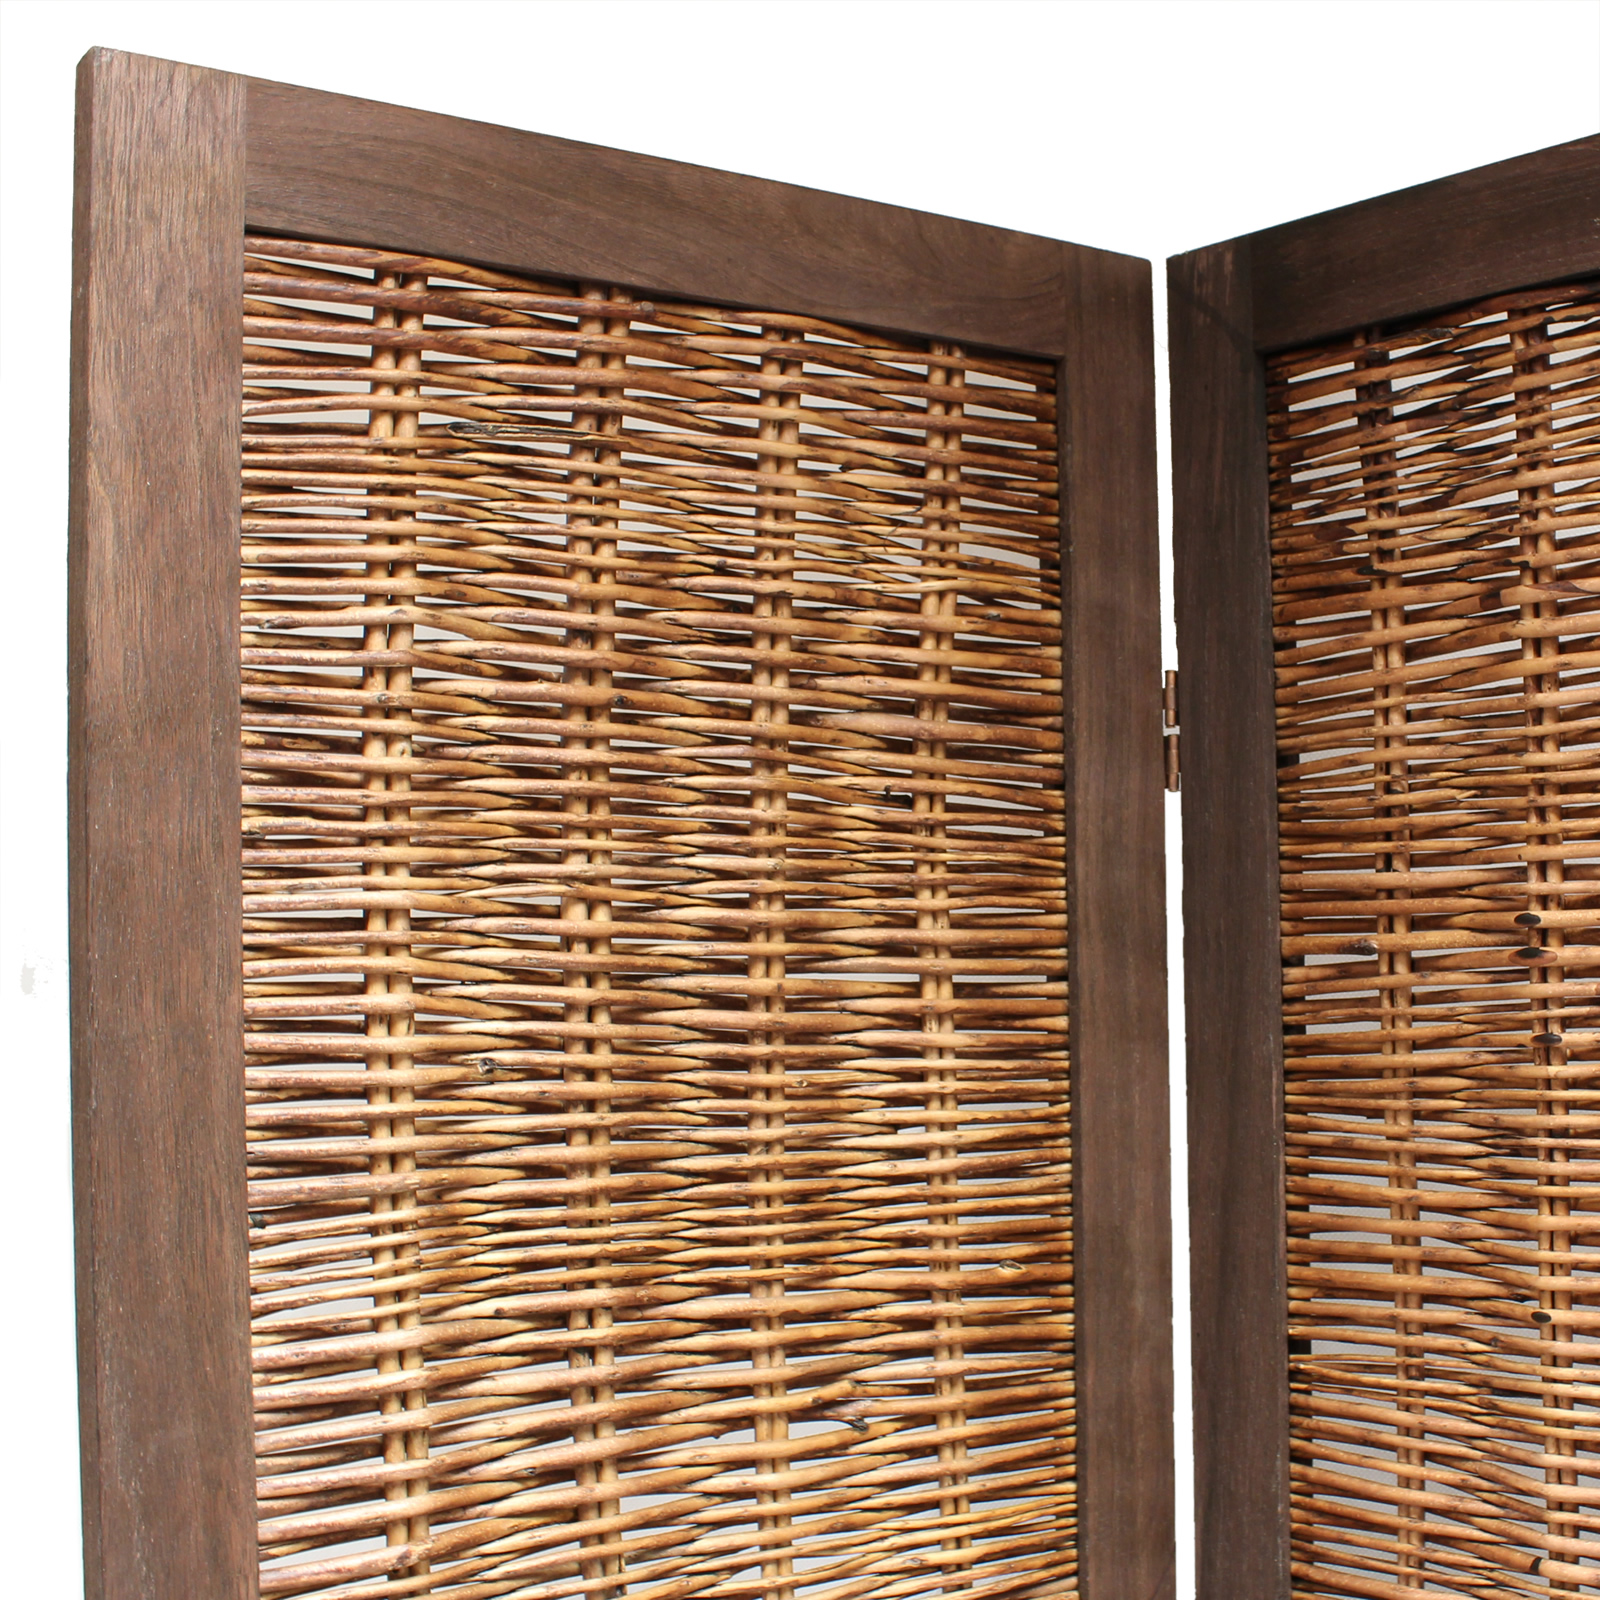 Wood Screens Room Dividers ~ Wooden framed wicker room divider privacy screen partition